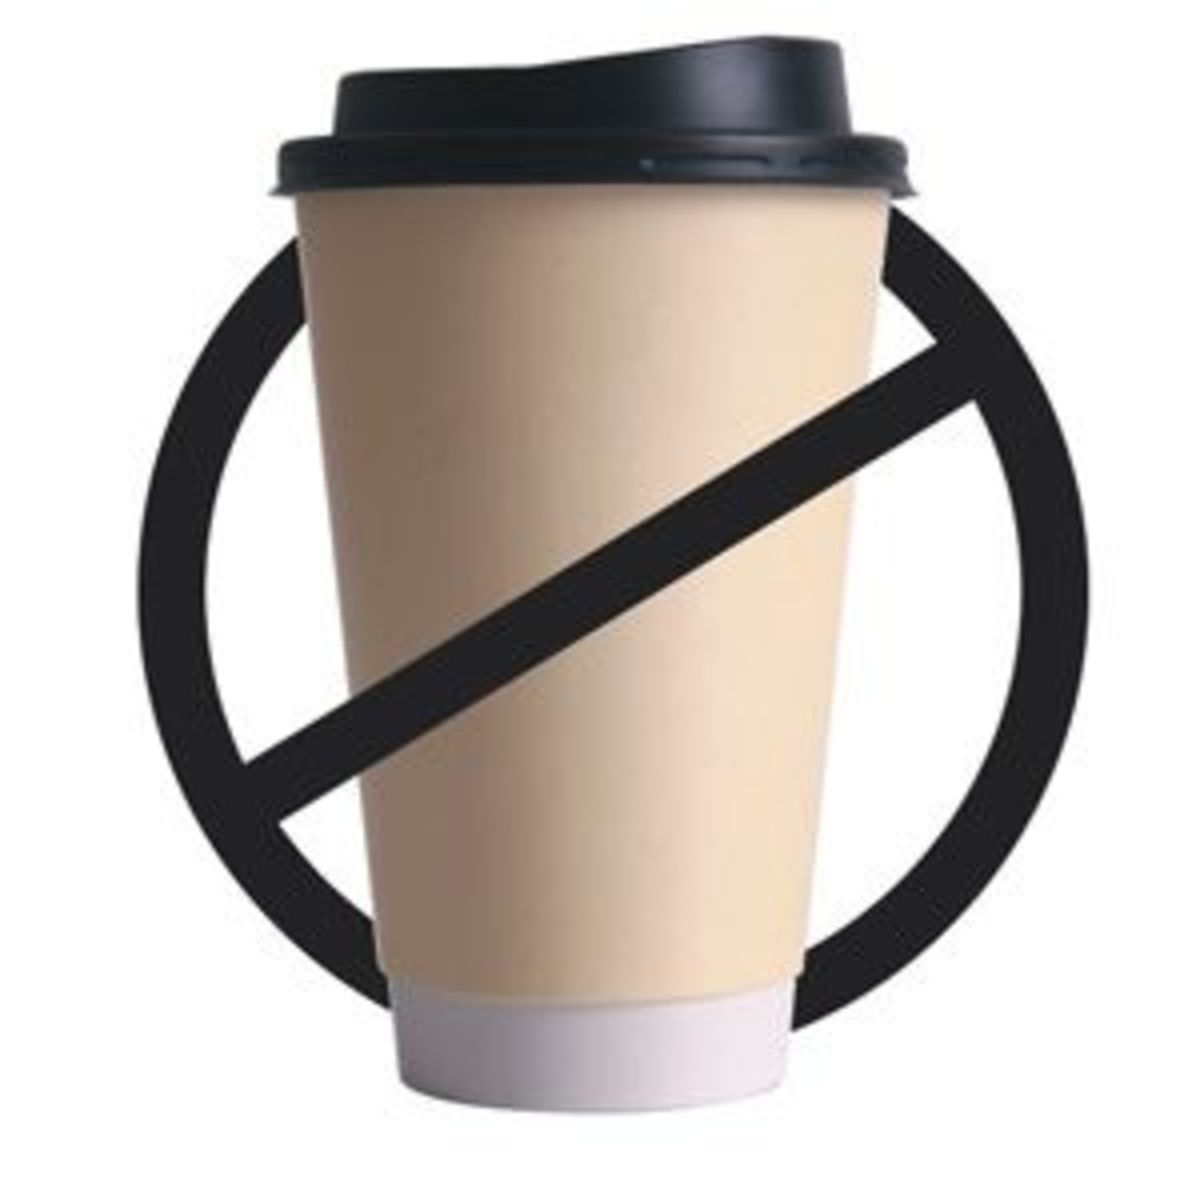 Coffee is not bad as long as you don't drink too much.